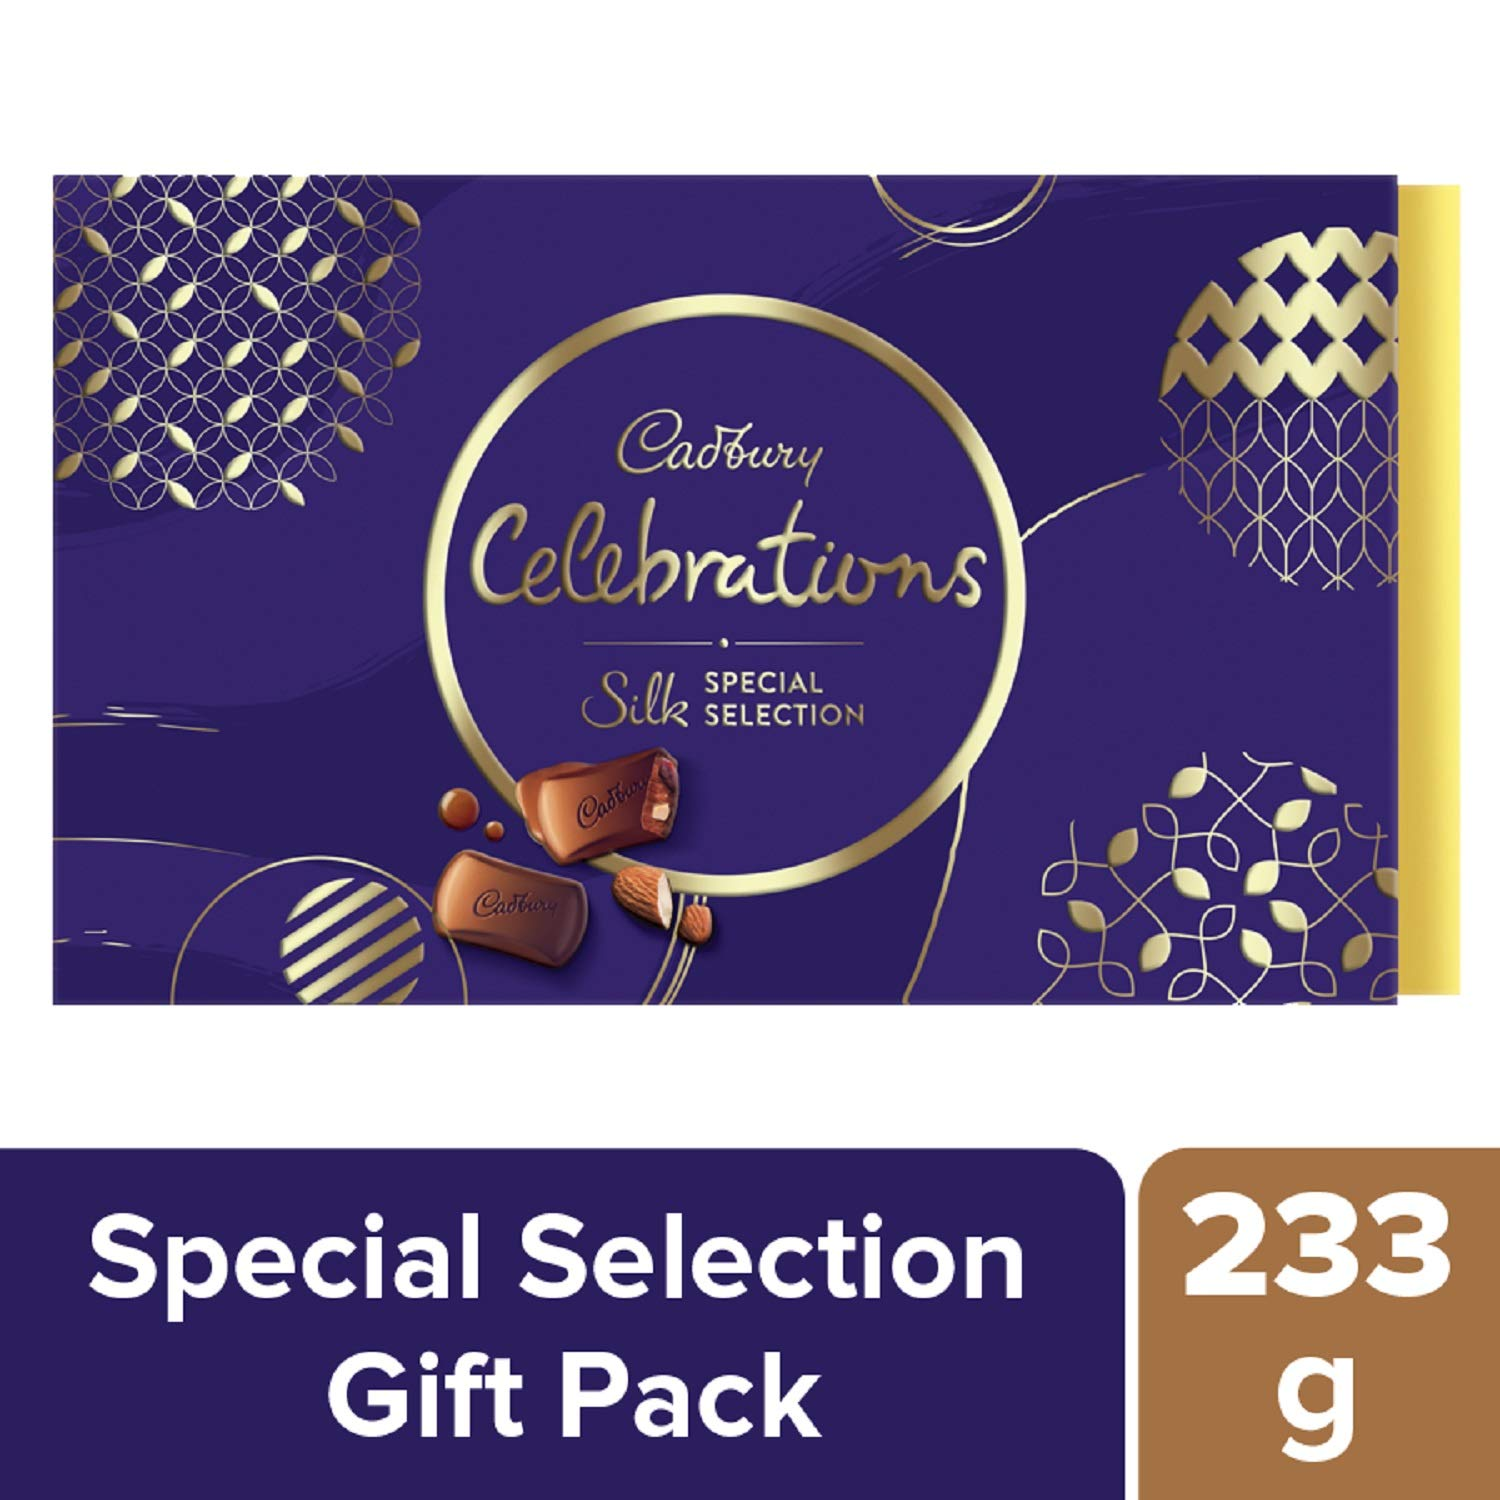 Cadbury Celebrations Silk Special Selection Gift Pack.